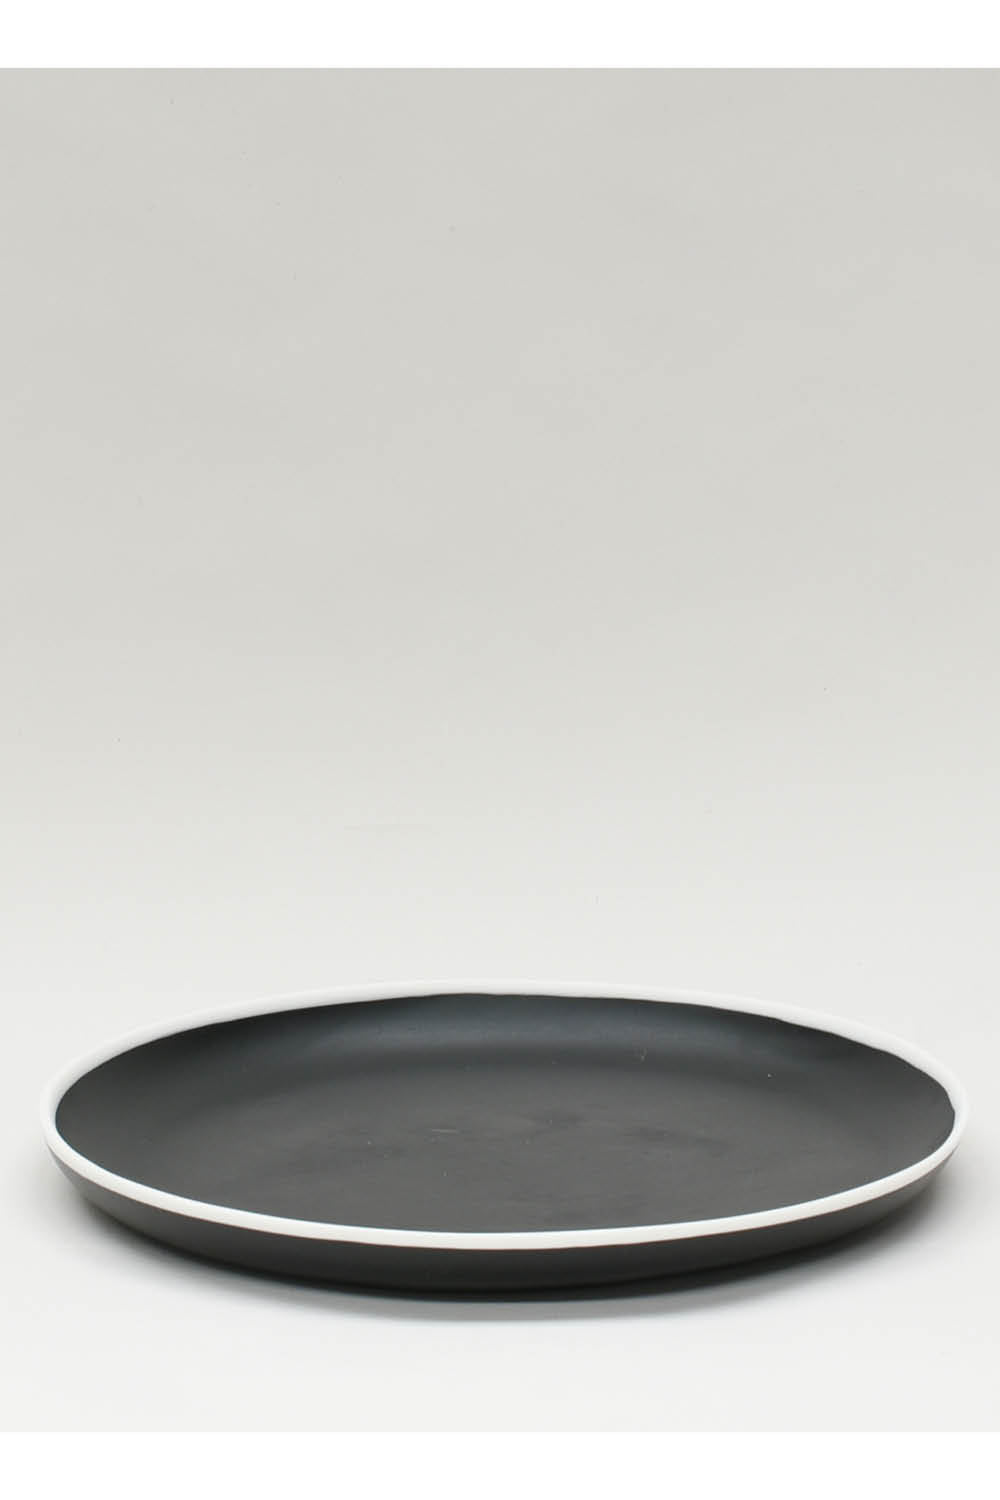 Platter in Black with White Rim